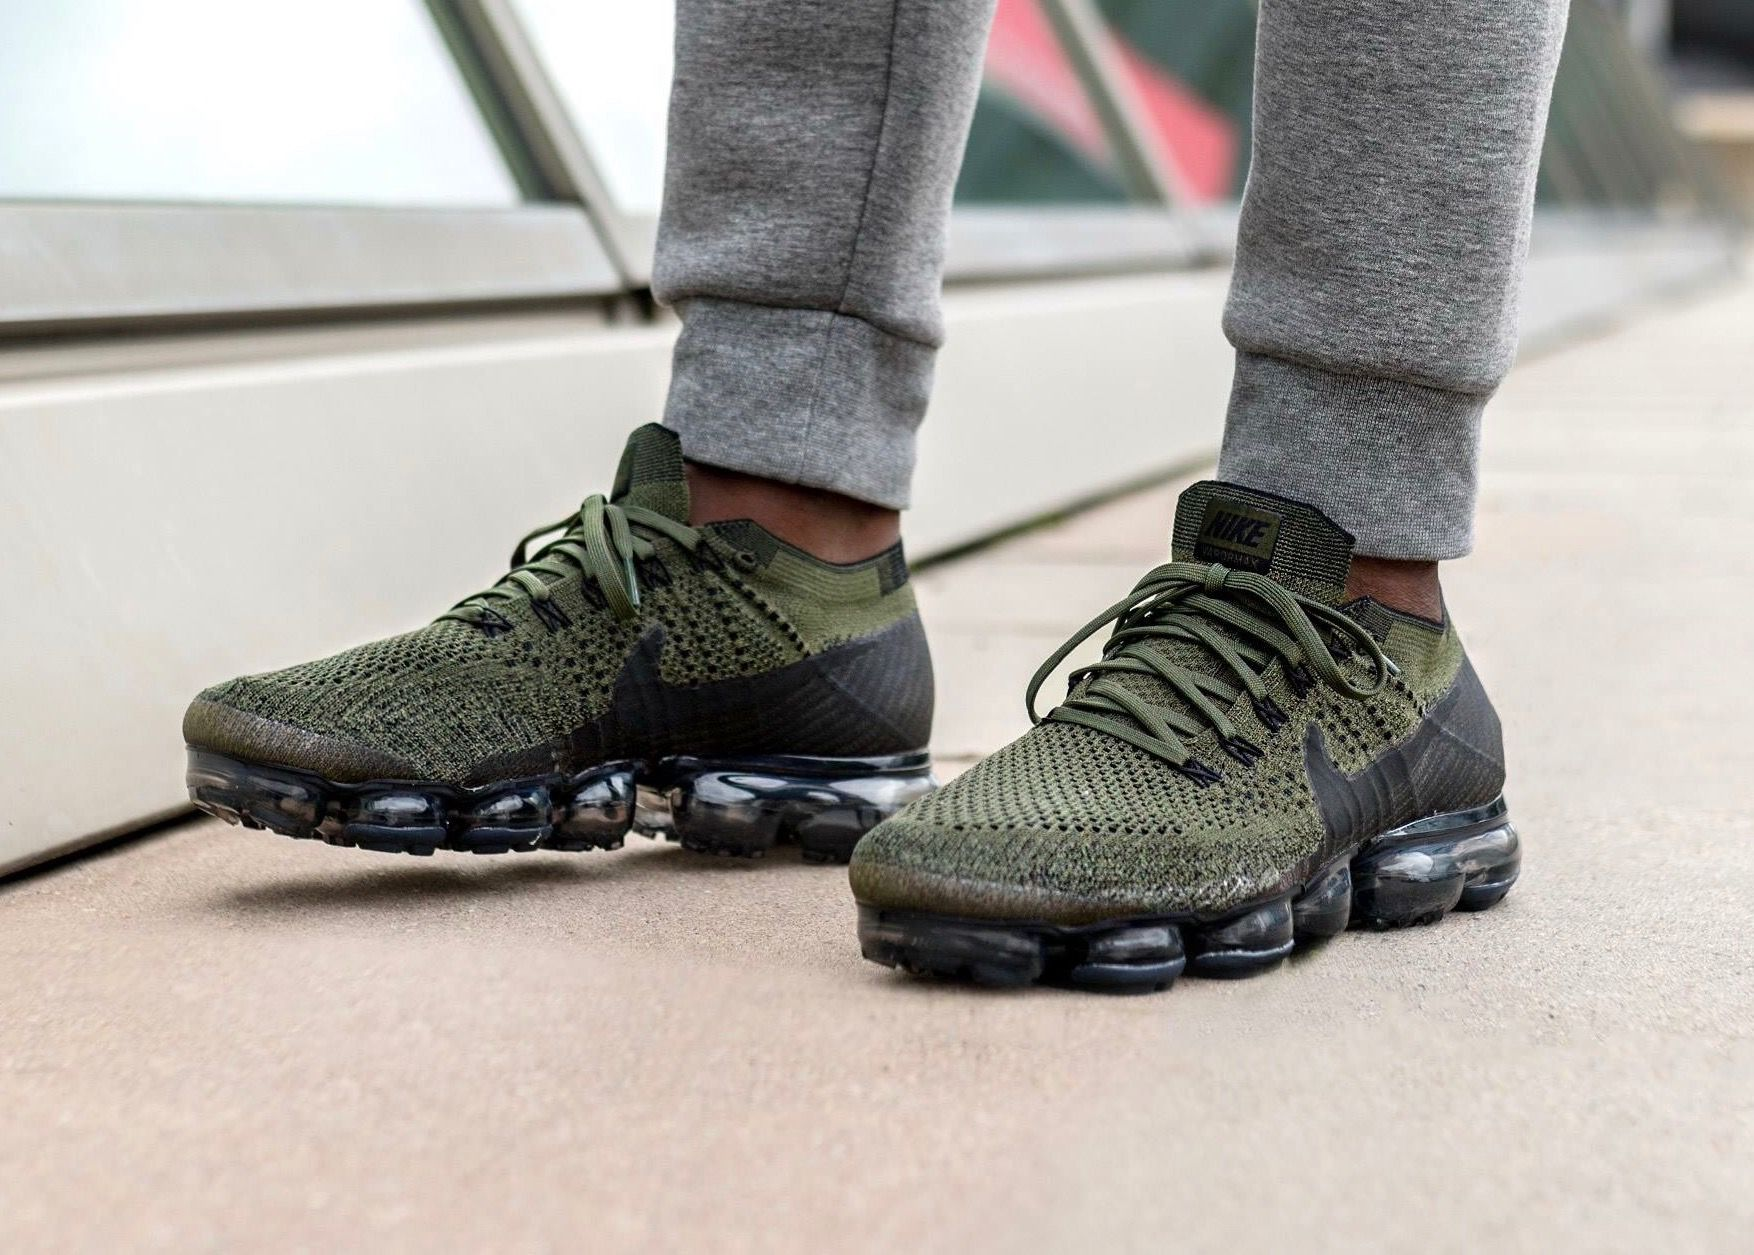 brand new wholesale price shopping Nike Air Vapormax Flyknit | Nike air vapormax, Shoes sneakers high ...